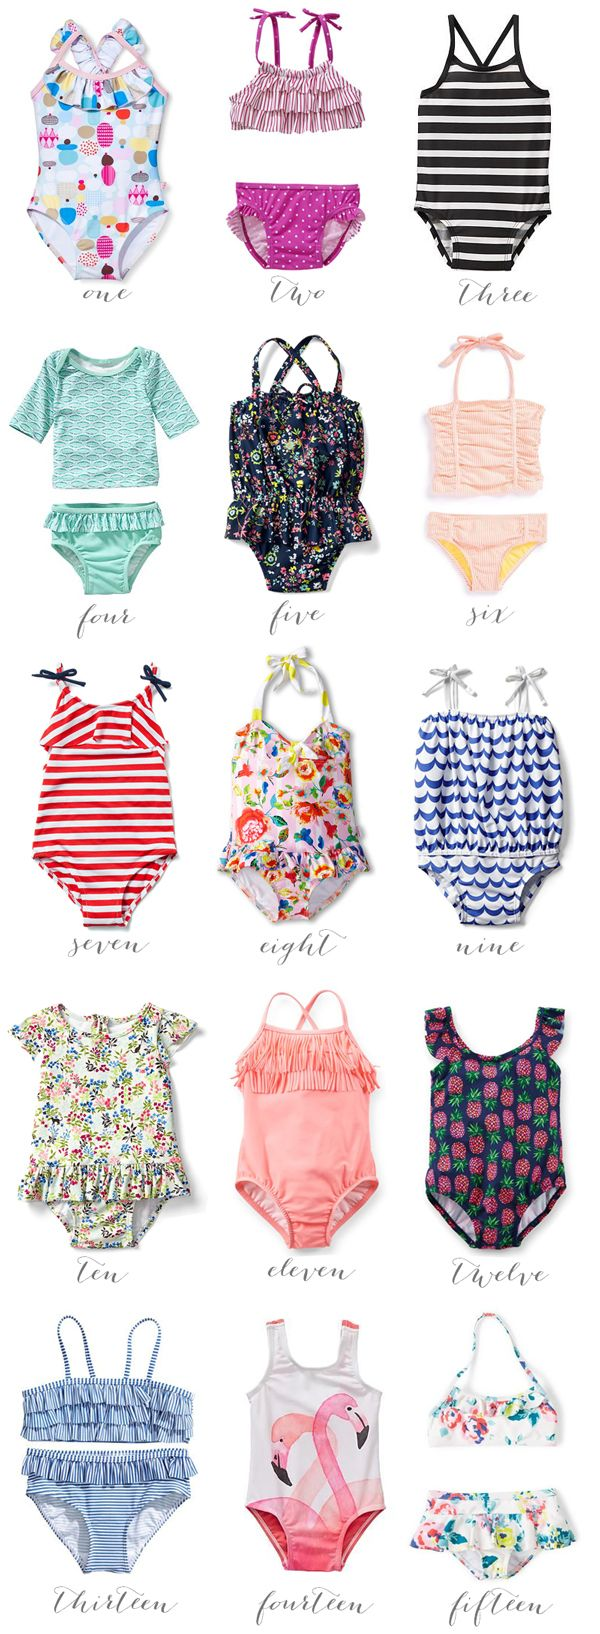 affordable swimsuits for girls | thrifty littles blog Ojalá hubiera de estos para adulto.